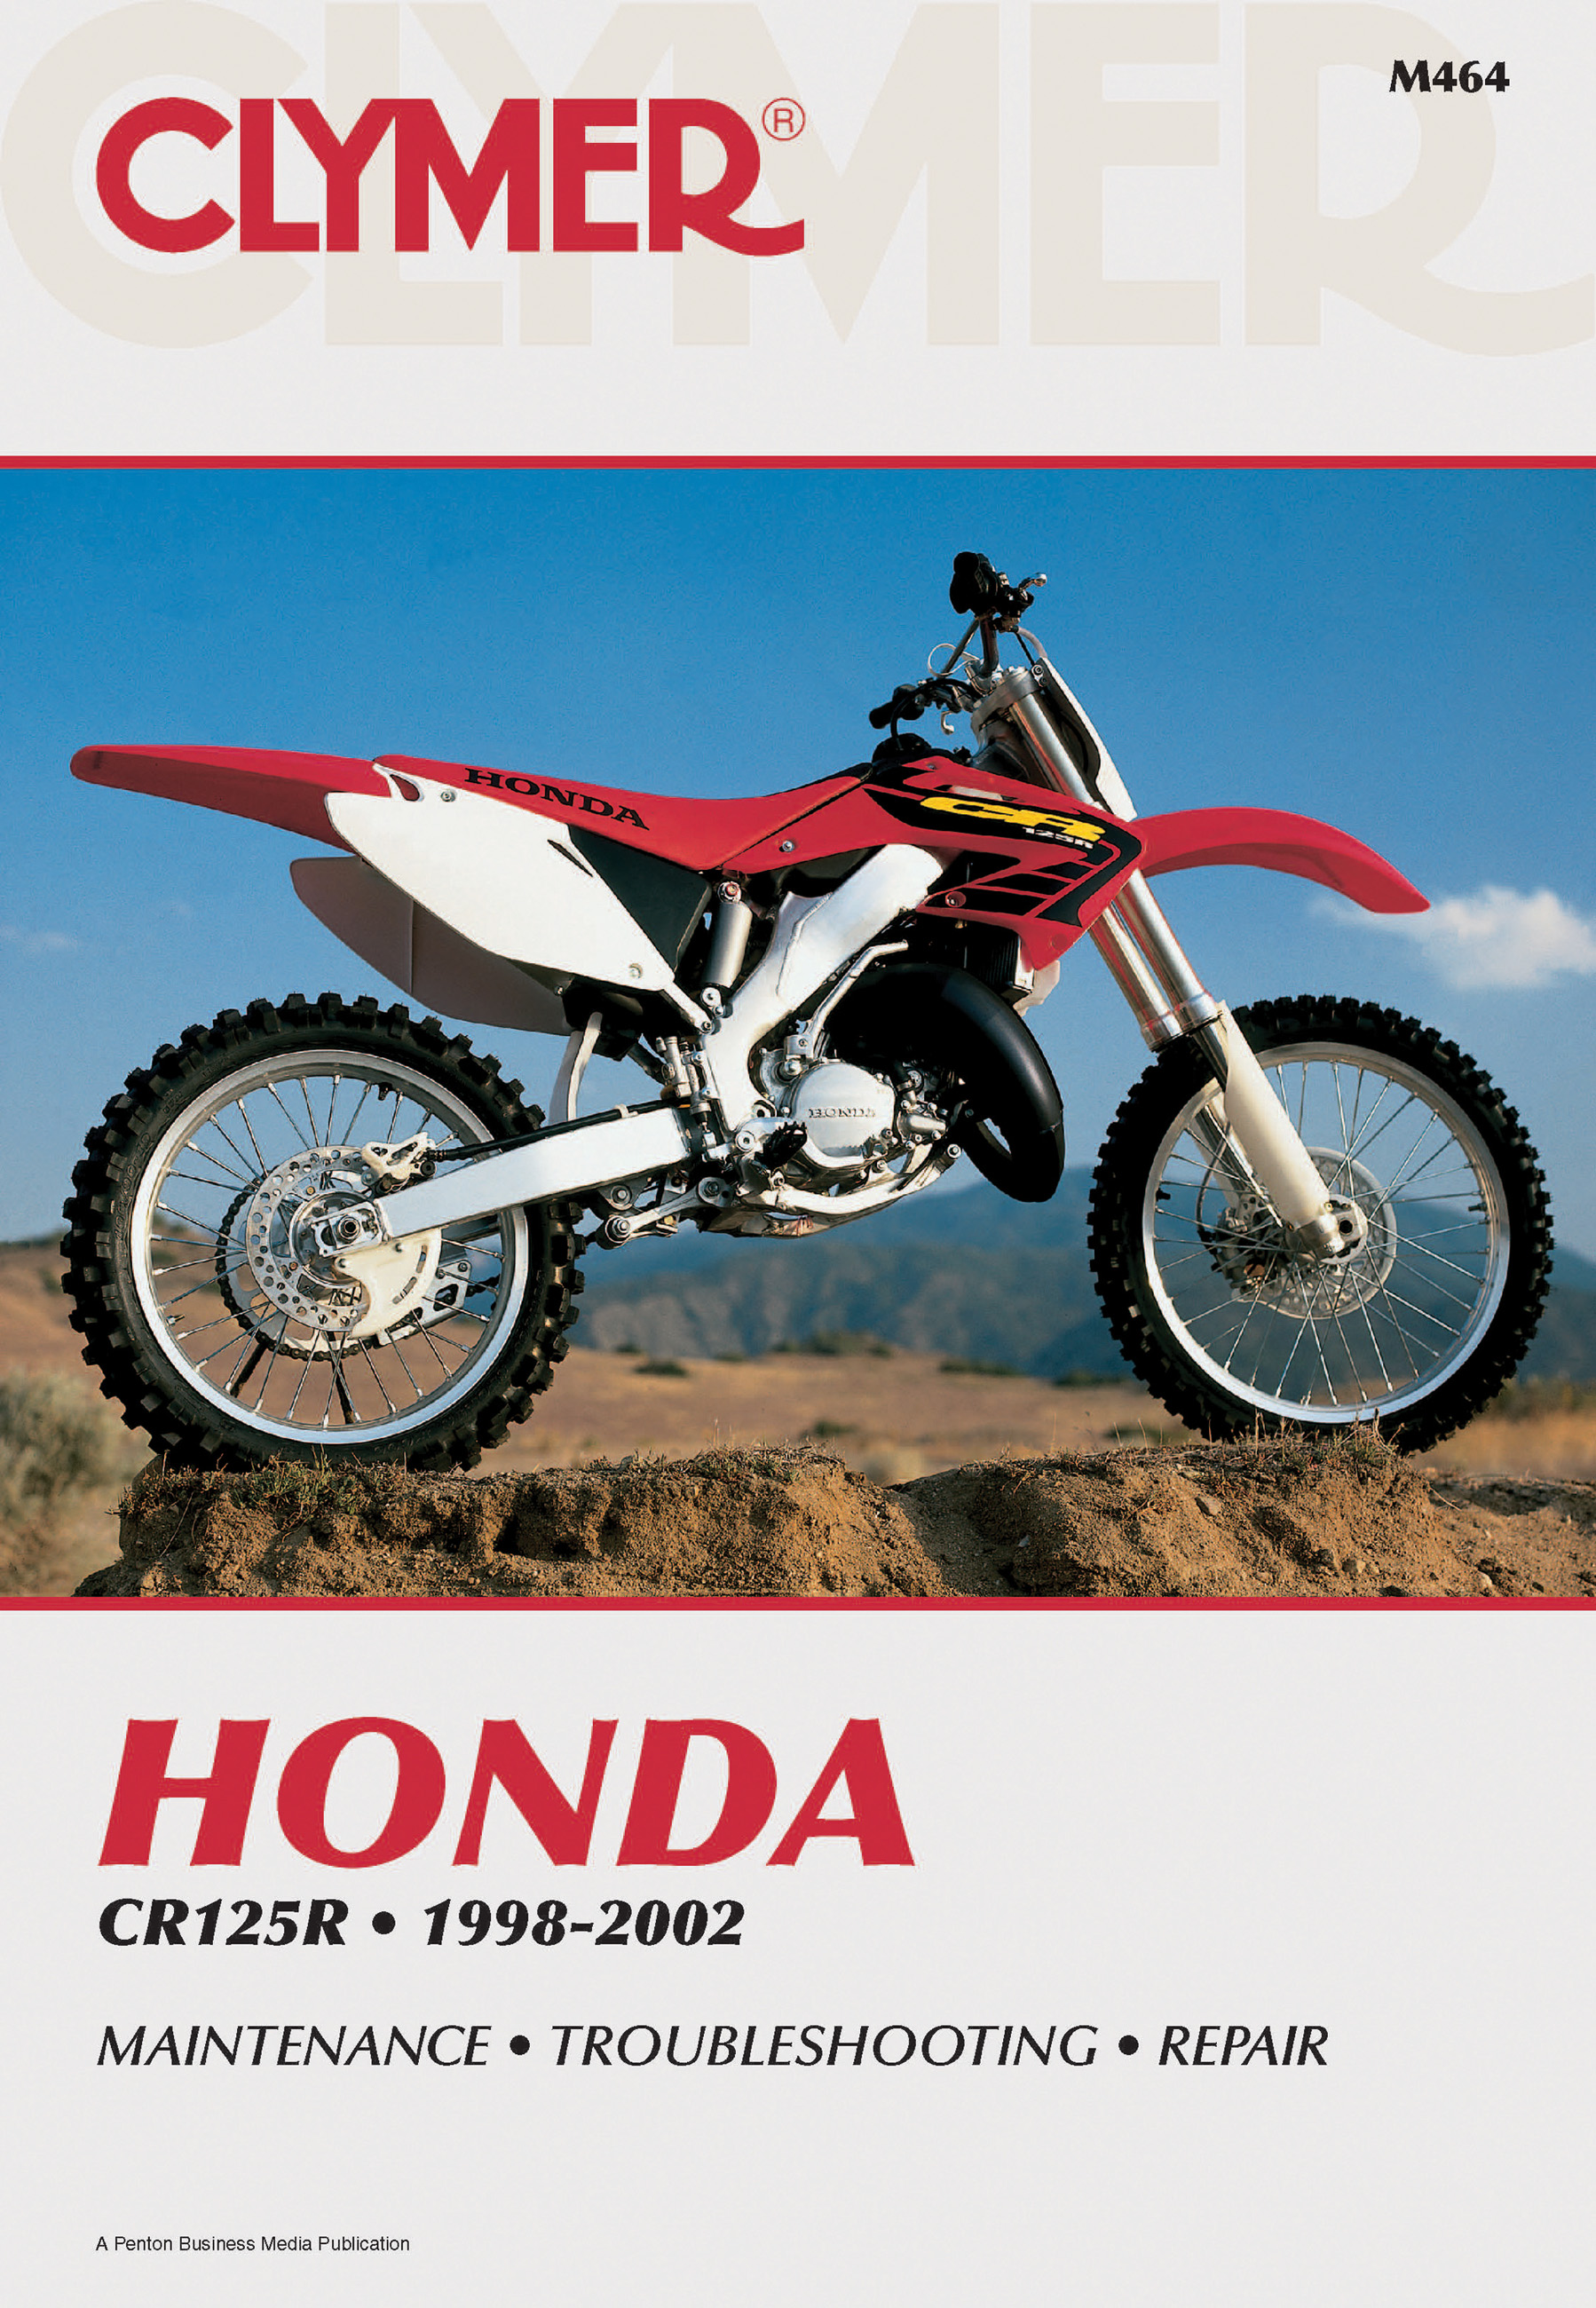 Sentinel Honda CR125 1998-2002 REPAIR SERVICE SHOP MANUAL CYLMER CILTON  HAYNES BOOK